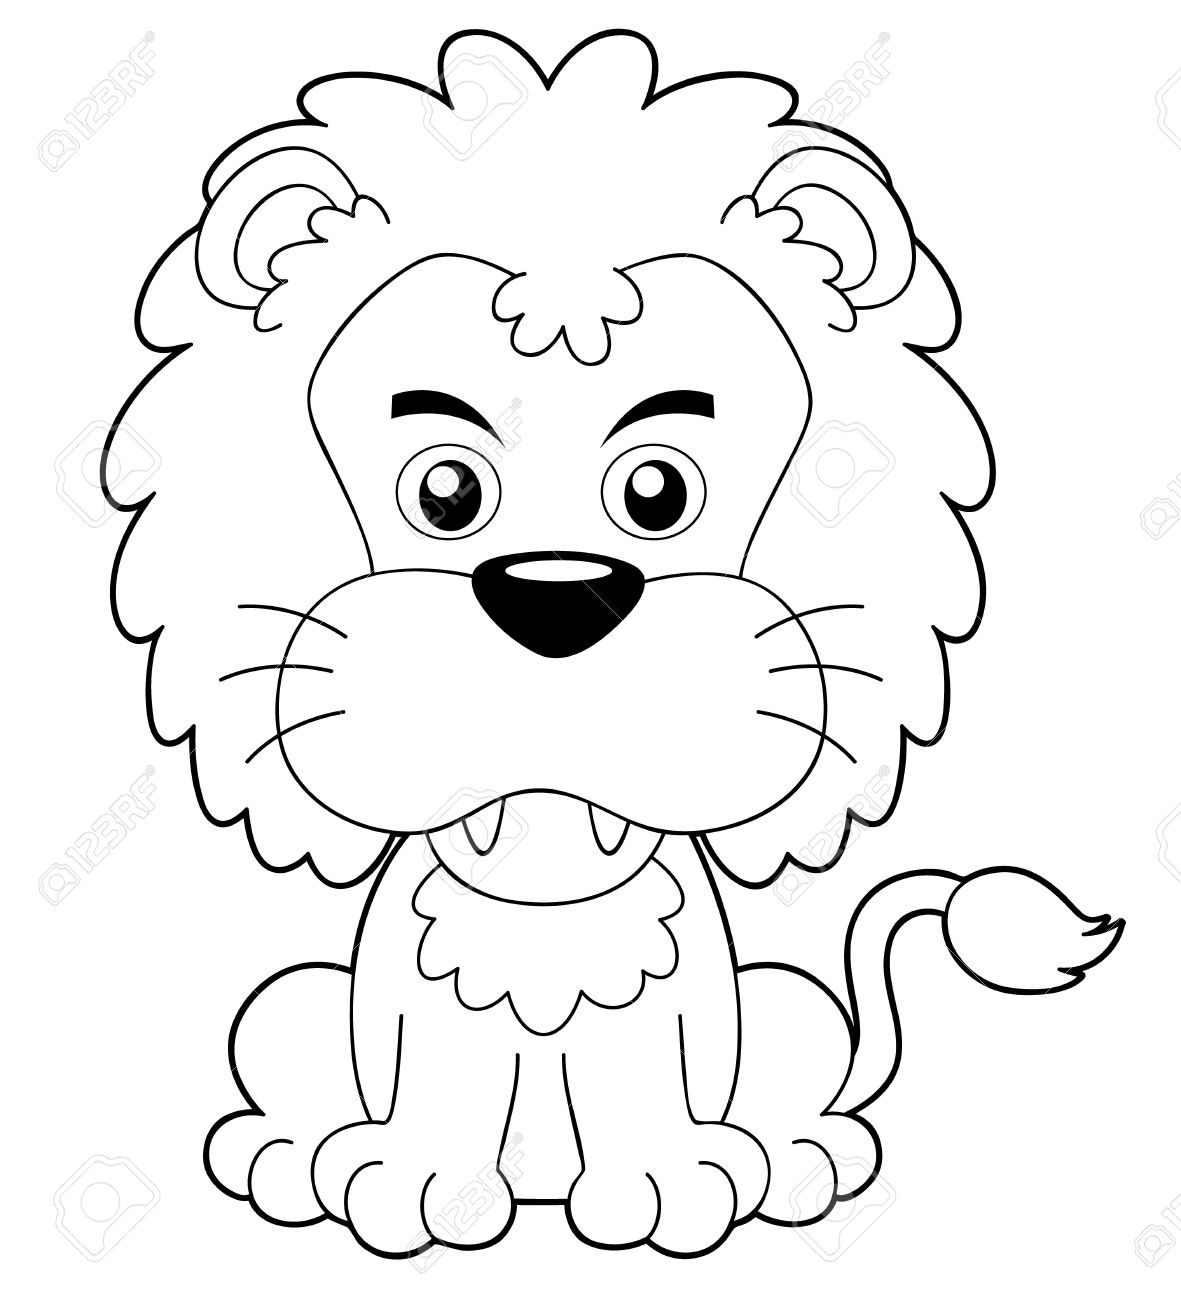 Illustration Of Cartoon Lion Outline Royalty Free Cliparts Vectors And Stock Illustration Image 16392833 Baby lion clipart black and white. illustration of cartoon lion outline